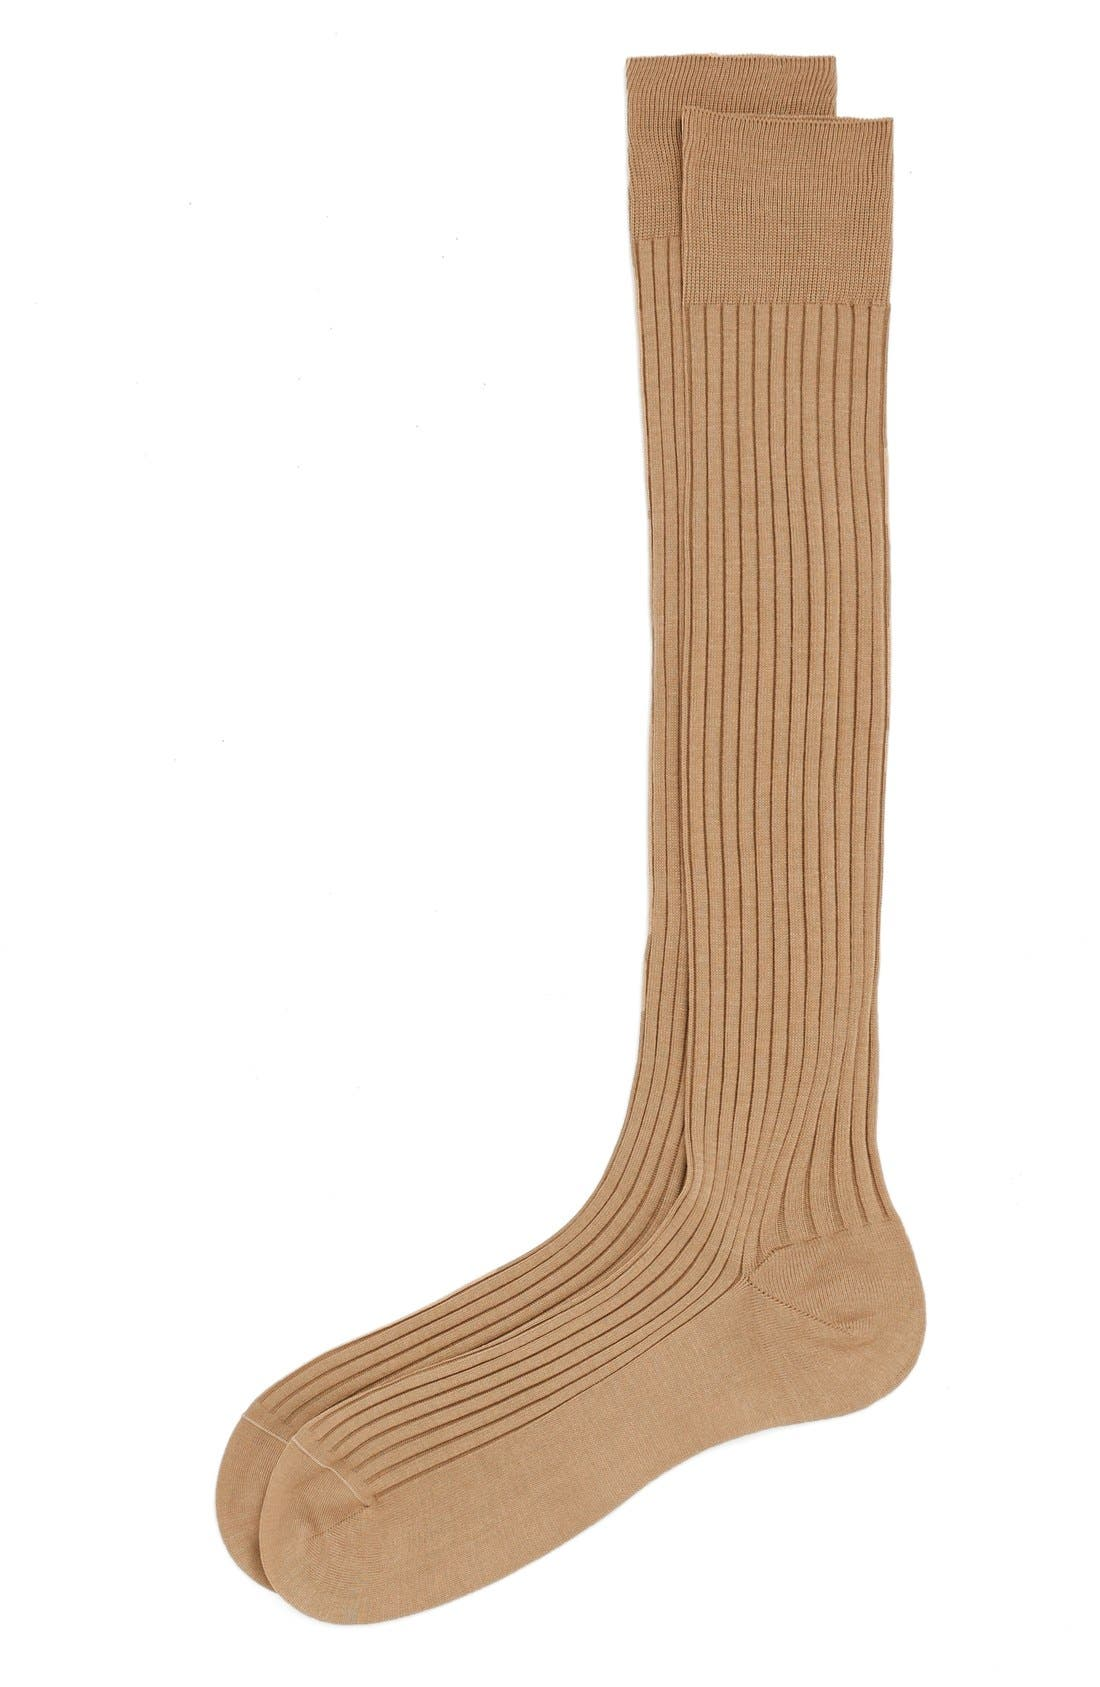 Alternate Image 1 Selected - Pantherella Cotton Lisle Blend Over the Calf Socks